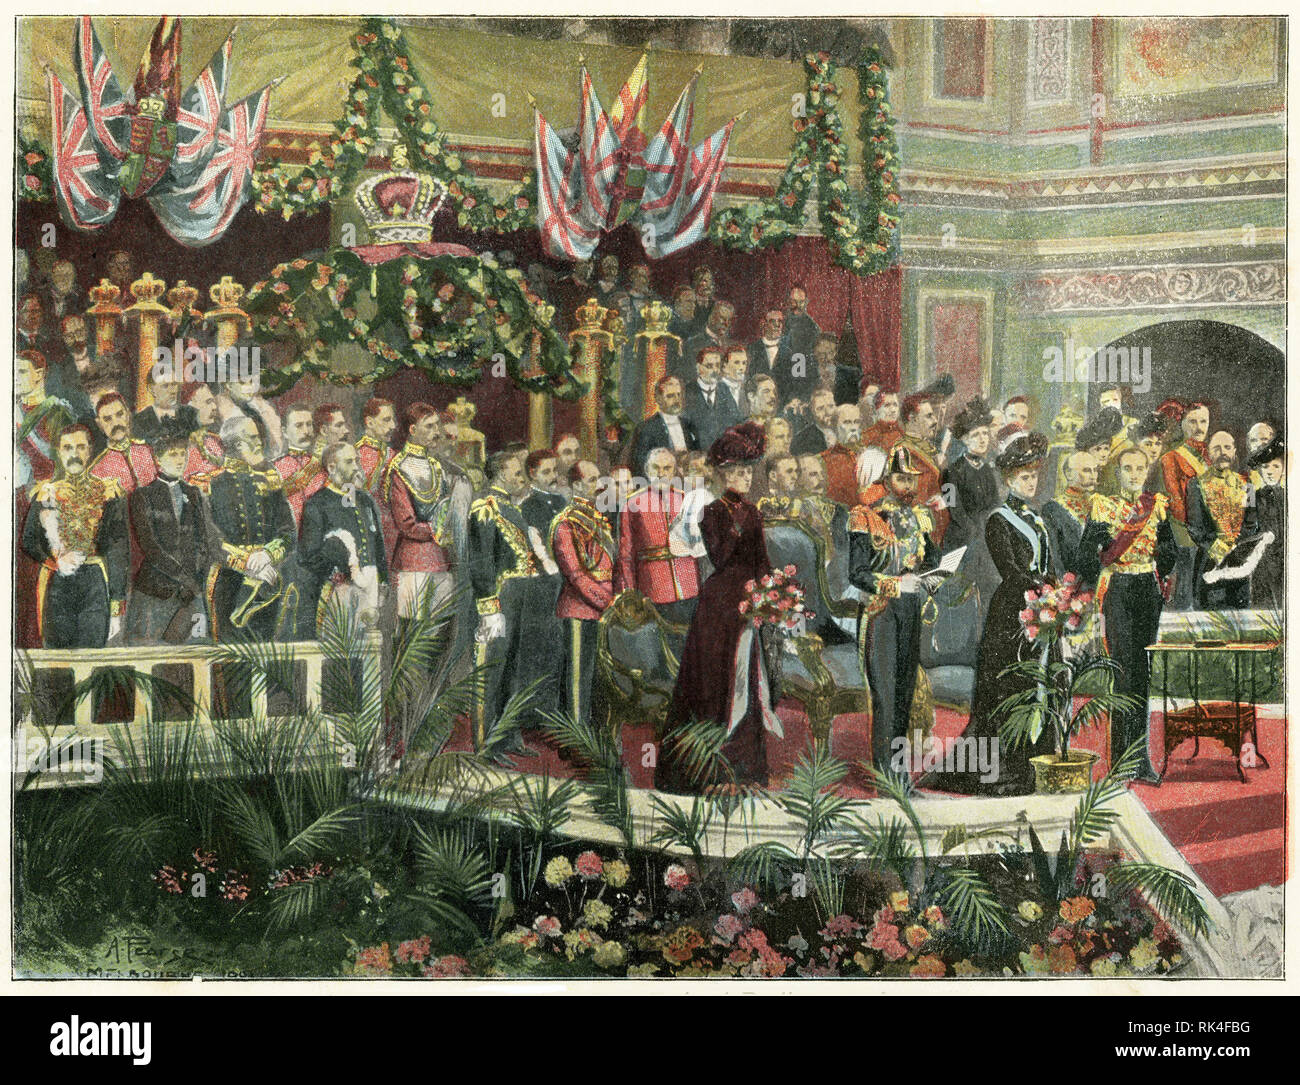 Coloured halftone of the Duke of York opening the Australian federal parliament, 1901. - Stock Image